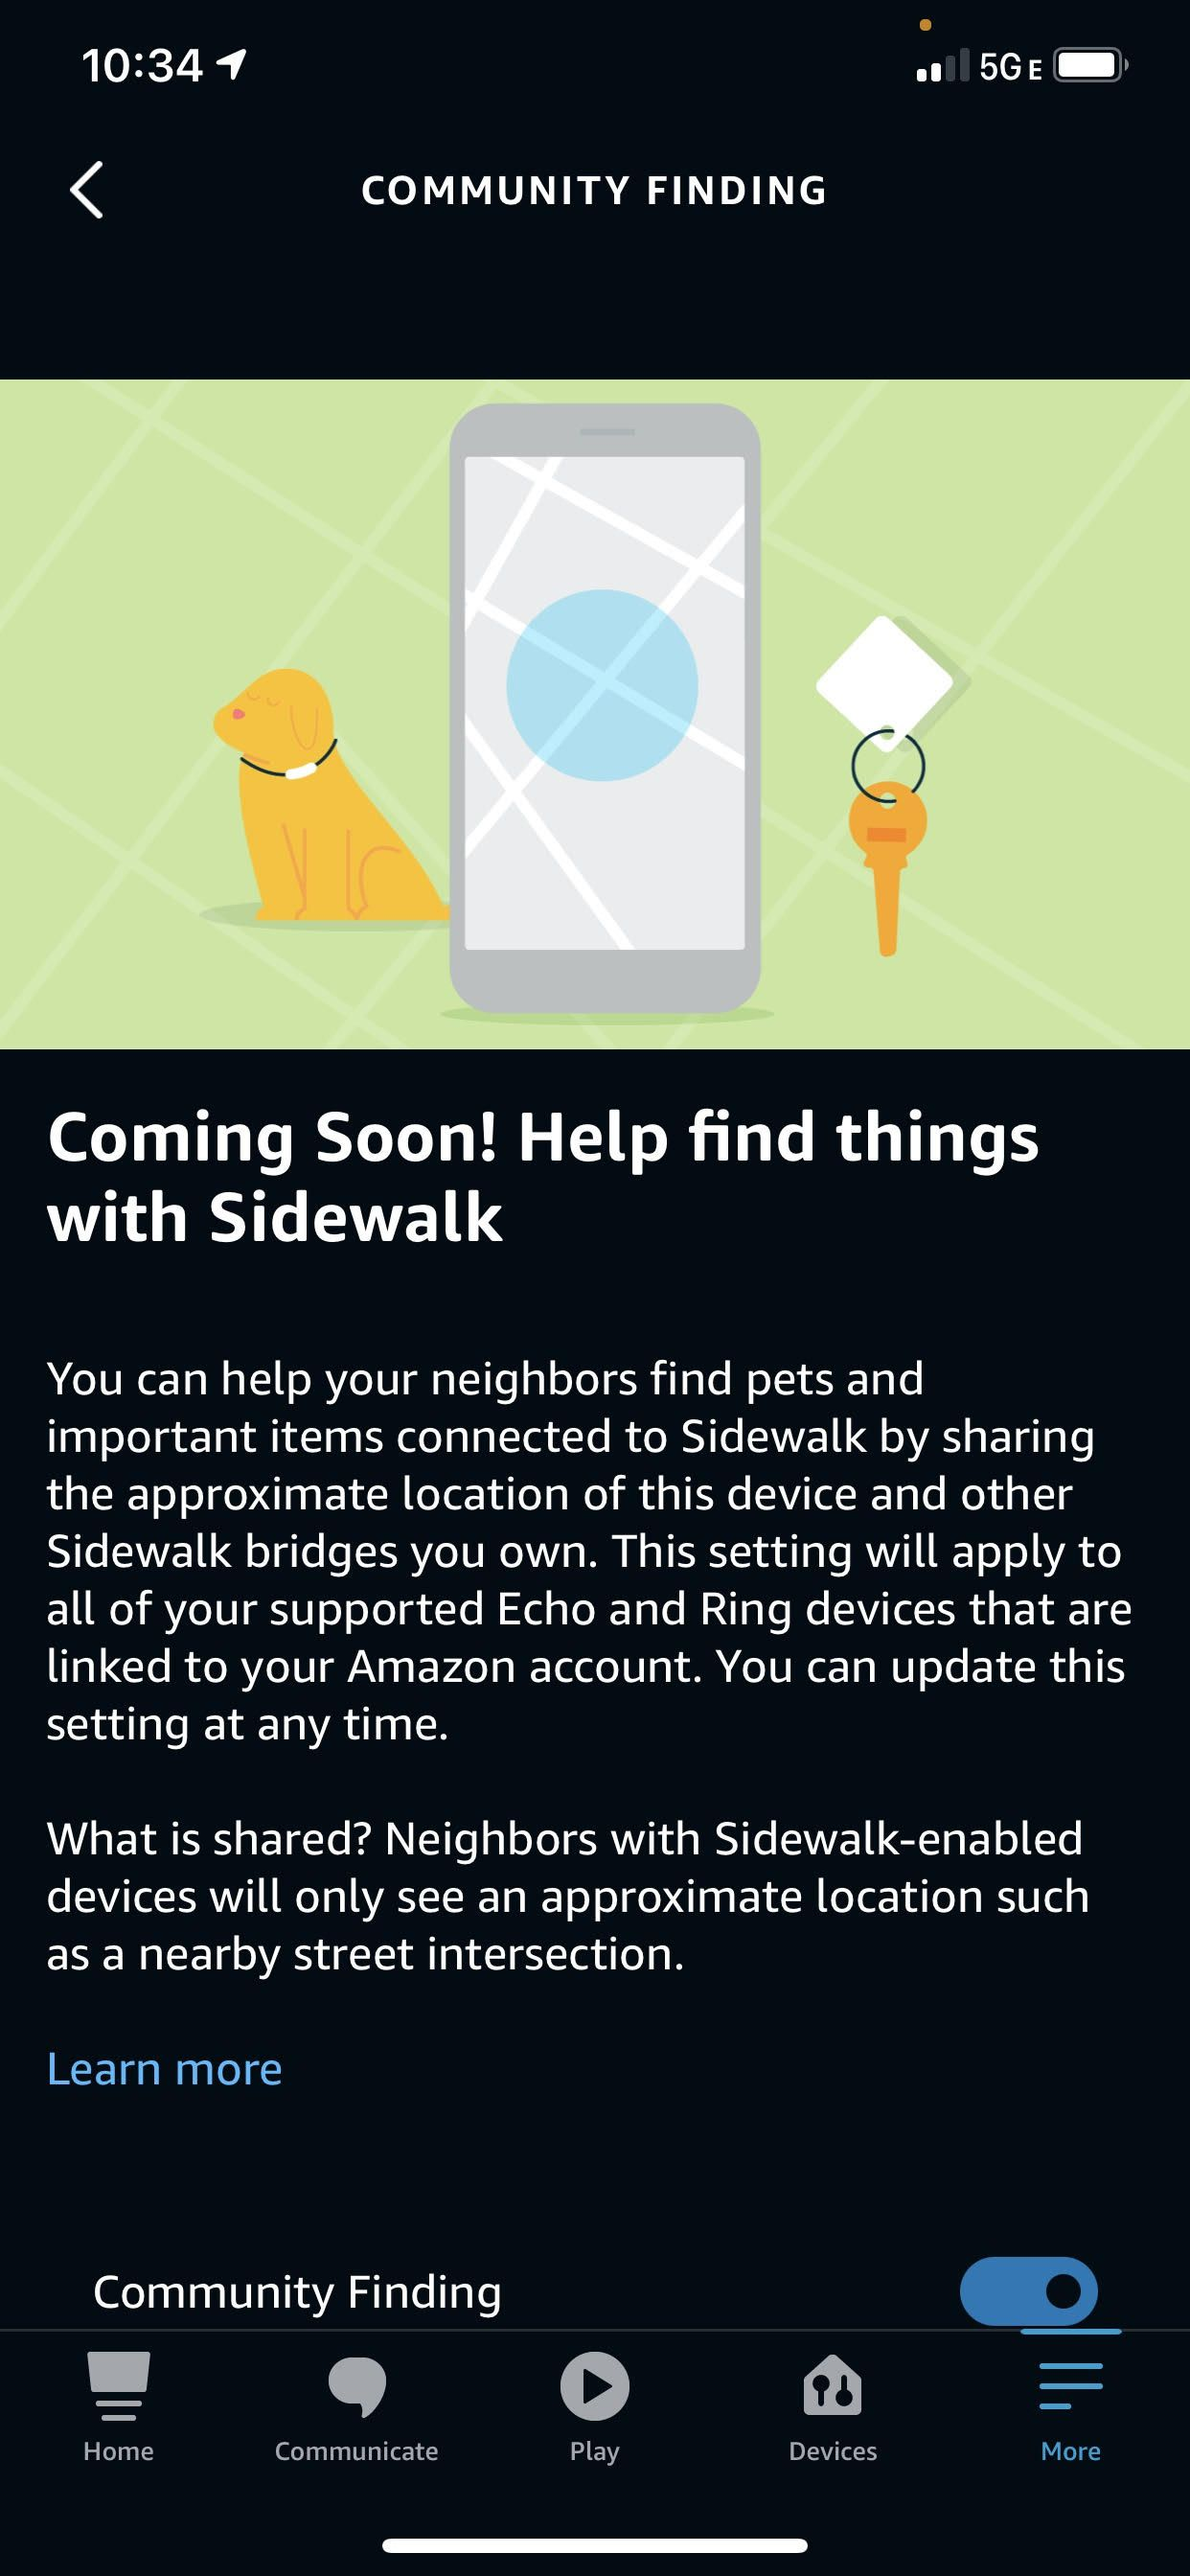 Community finding is part Sidewalk. It shares an approximate location so users can find lost things.